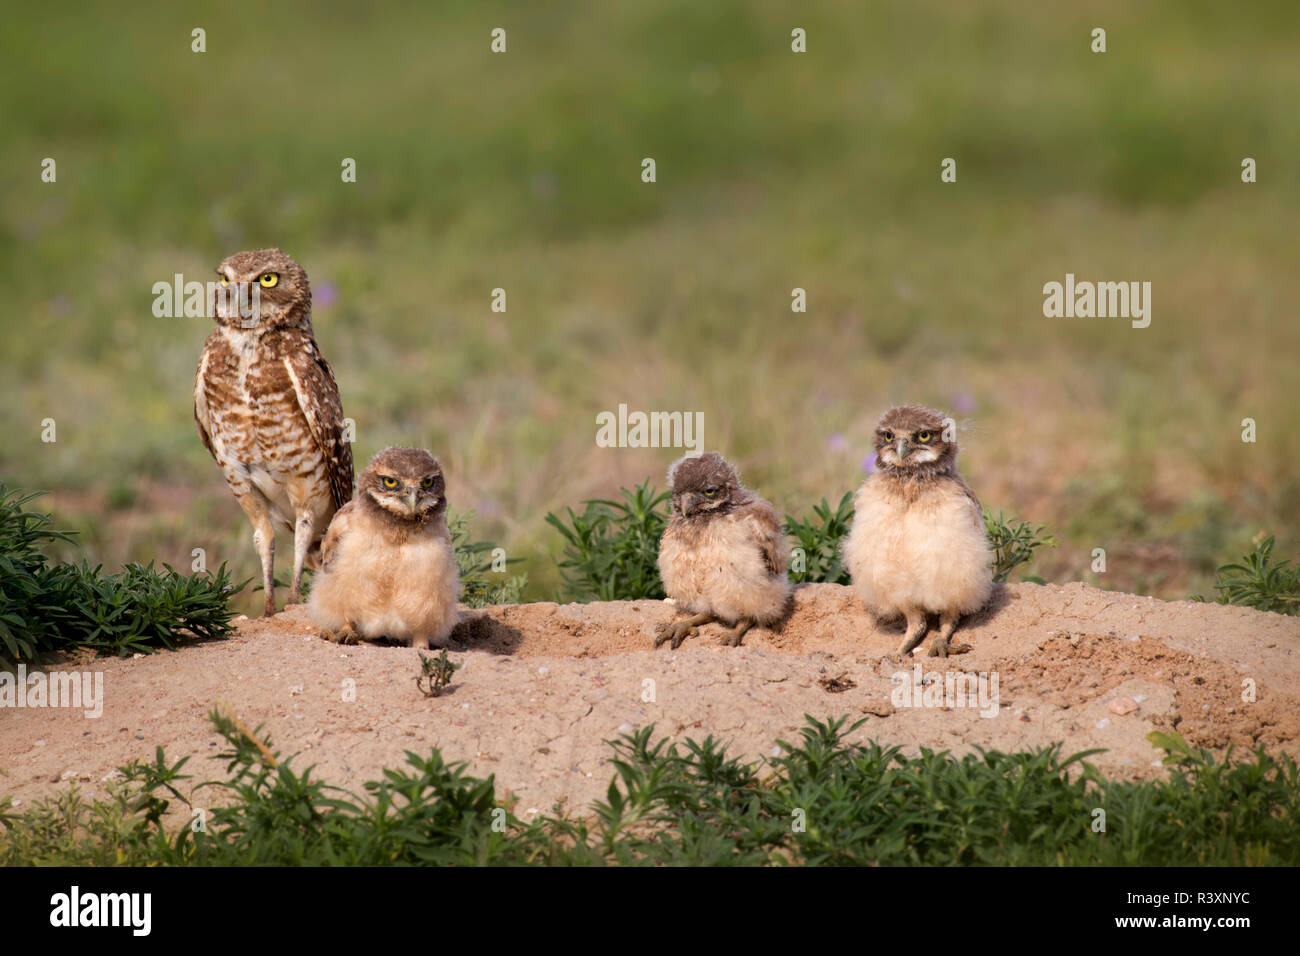 USA, Colorado, Pawnee National Grasslands. Burrowing owl female with three owlets. Credit as: Don Grall / Jaynes Gallery / DanitaDelimont. com - Stock Image